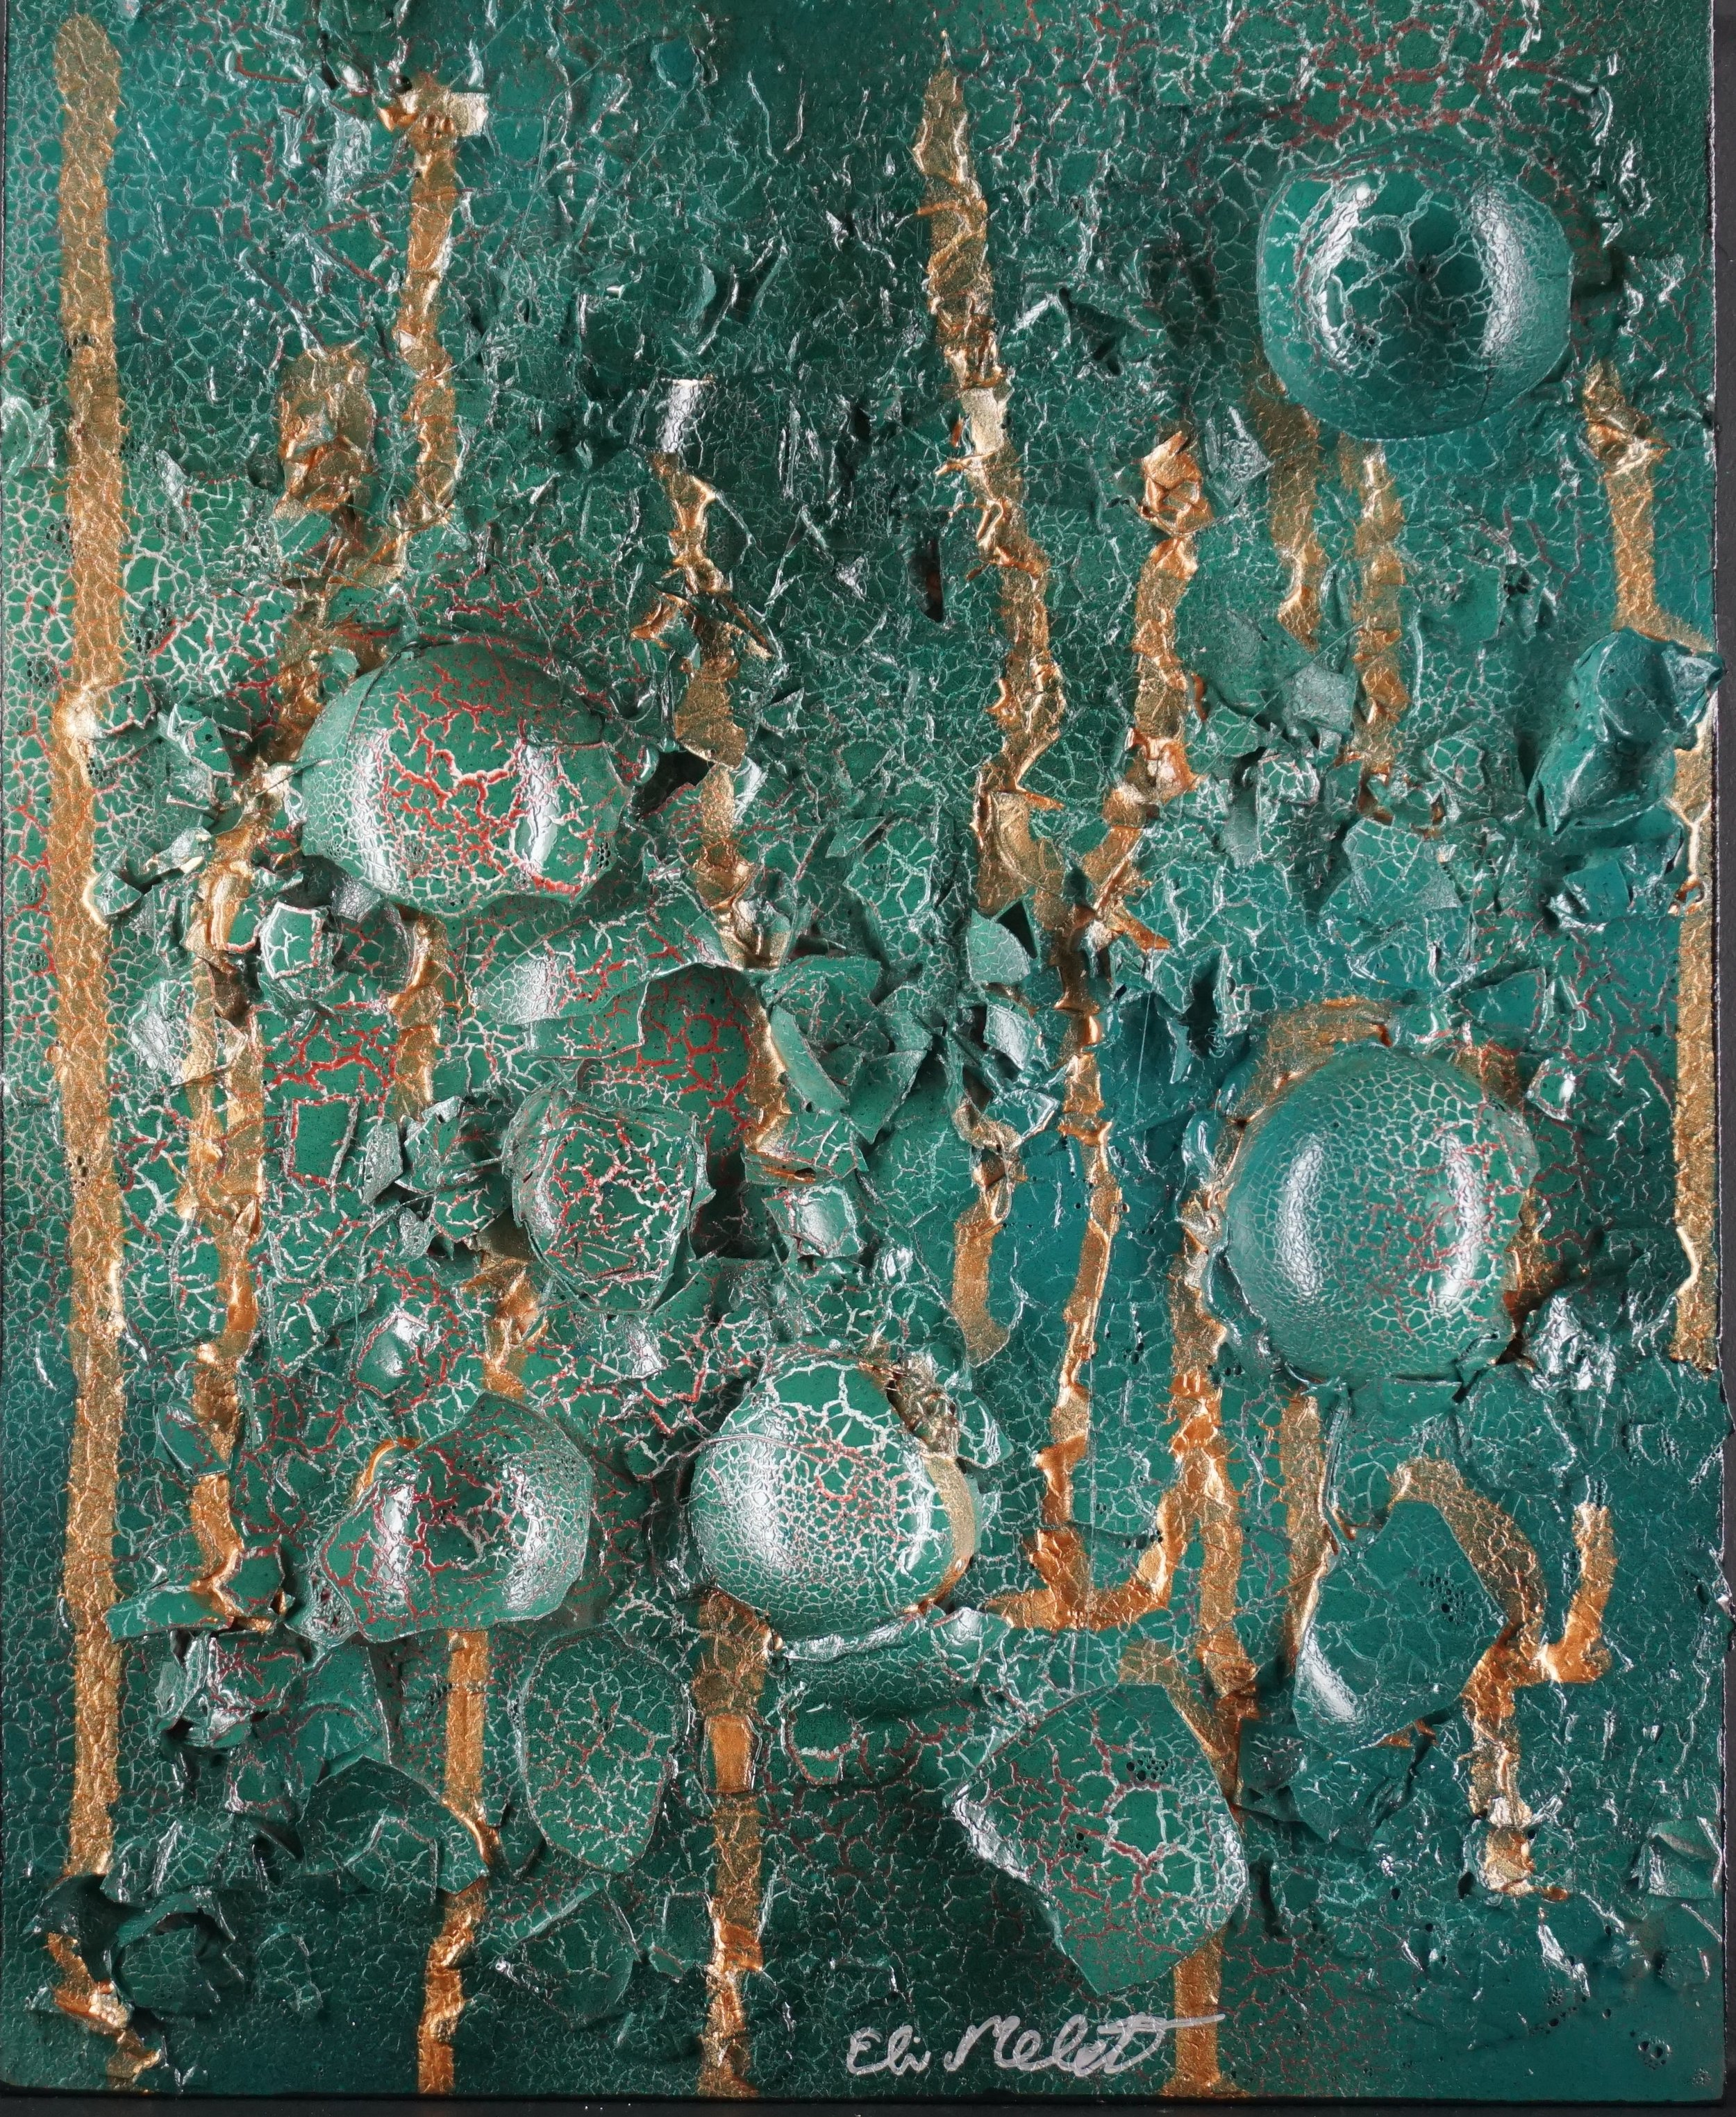 Mixed media (eggshells) on panel: 10x8 SOLD